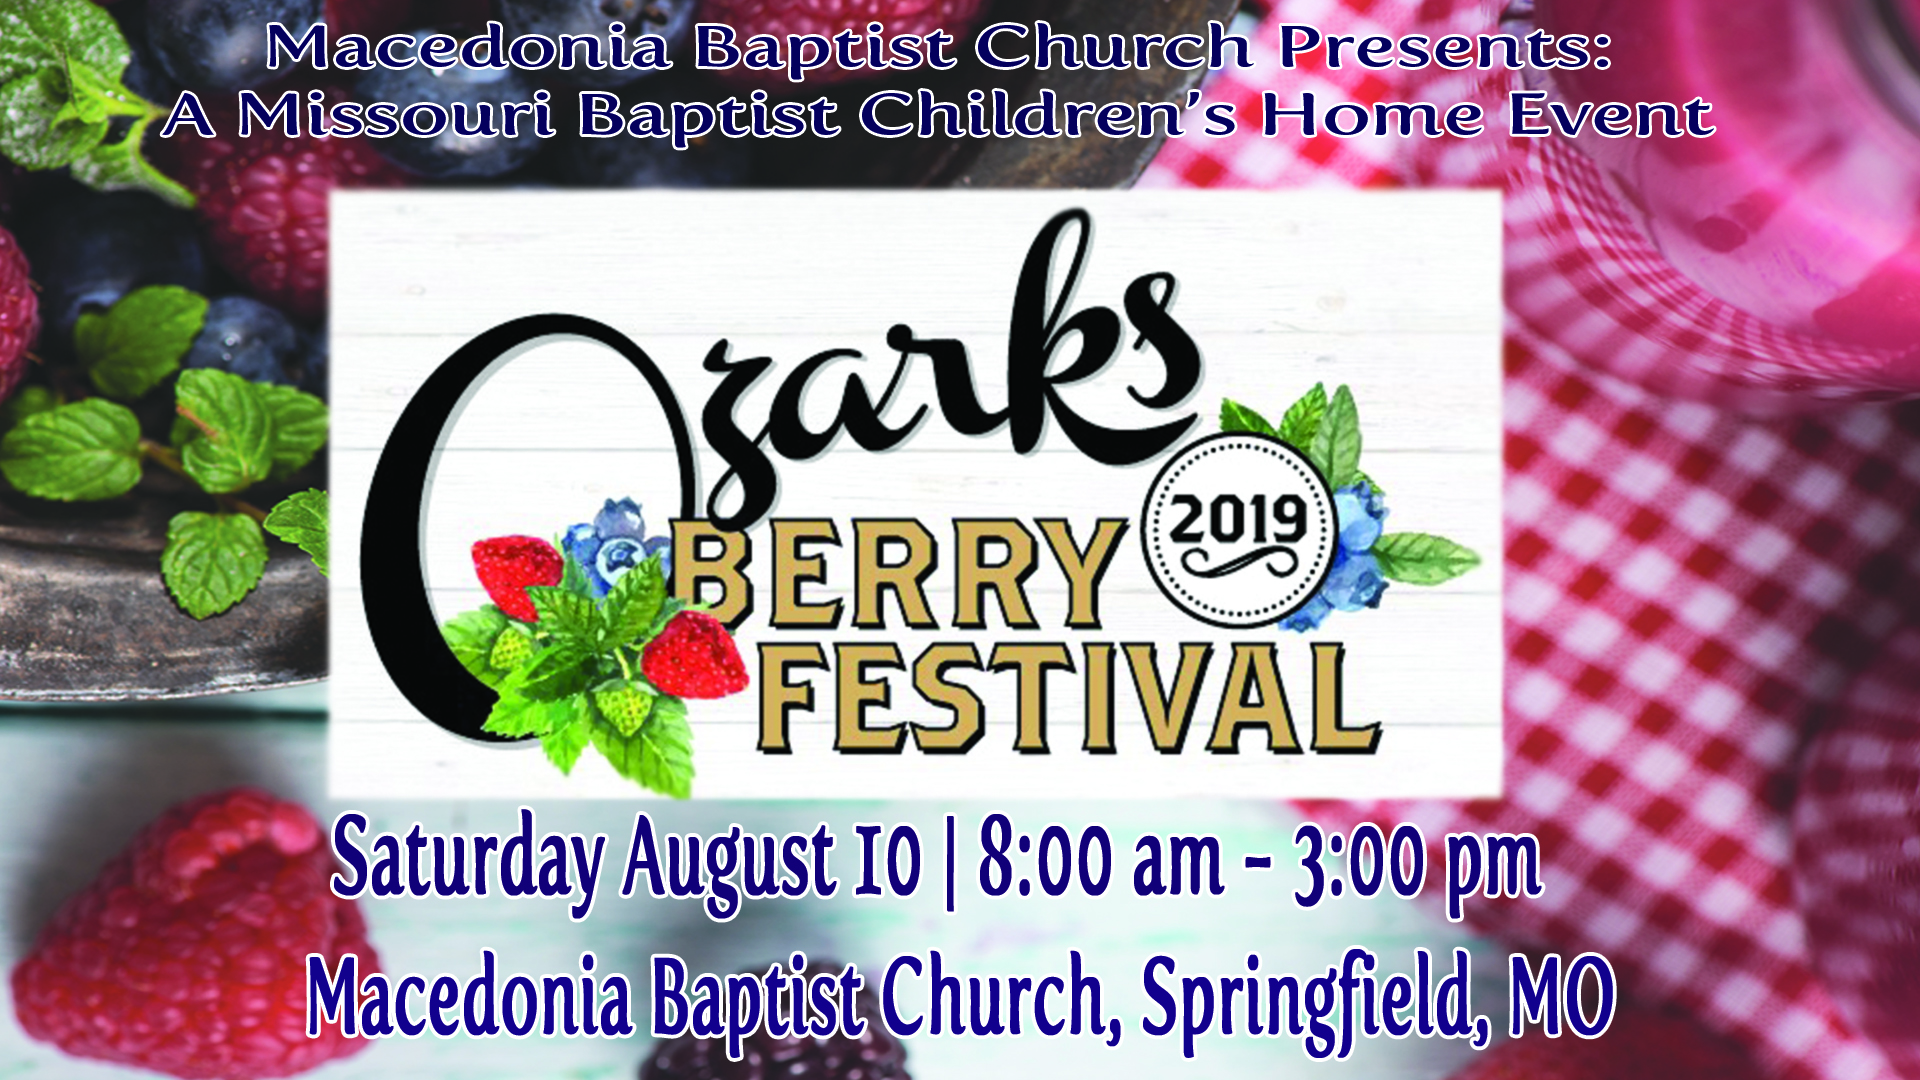 2019 Ozark Berry Festival Article Image